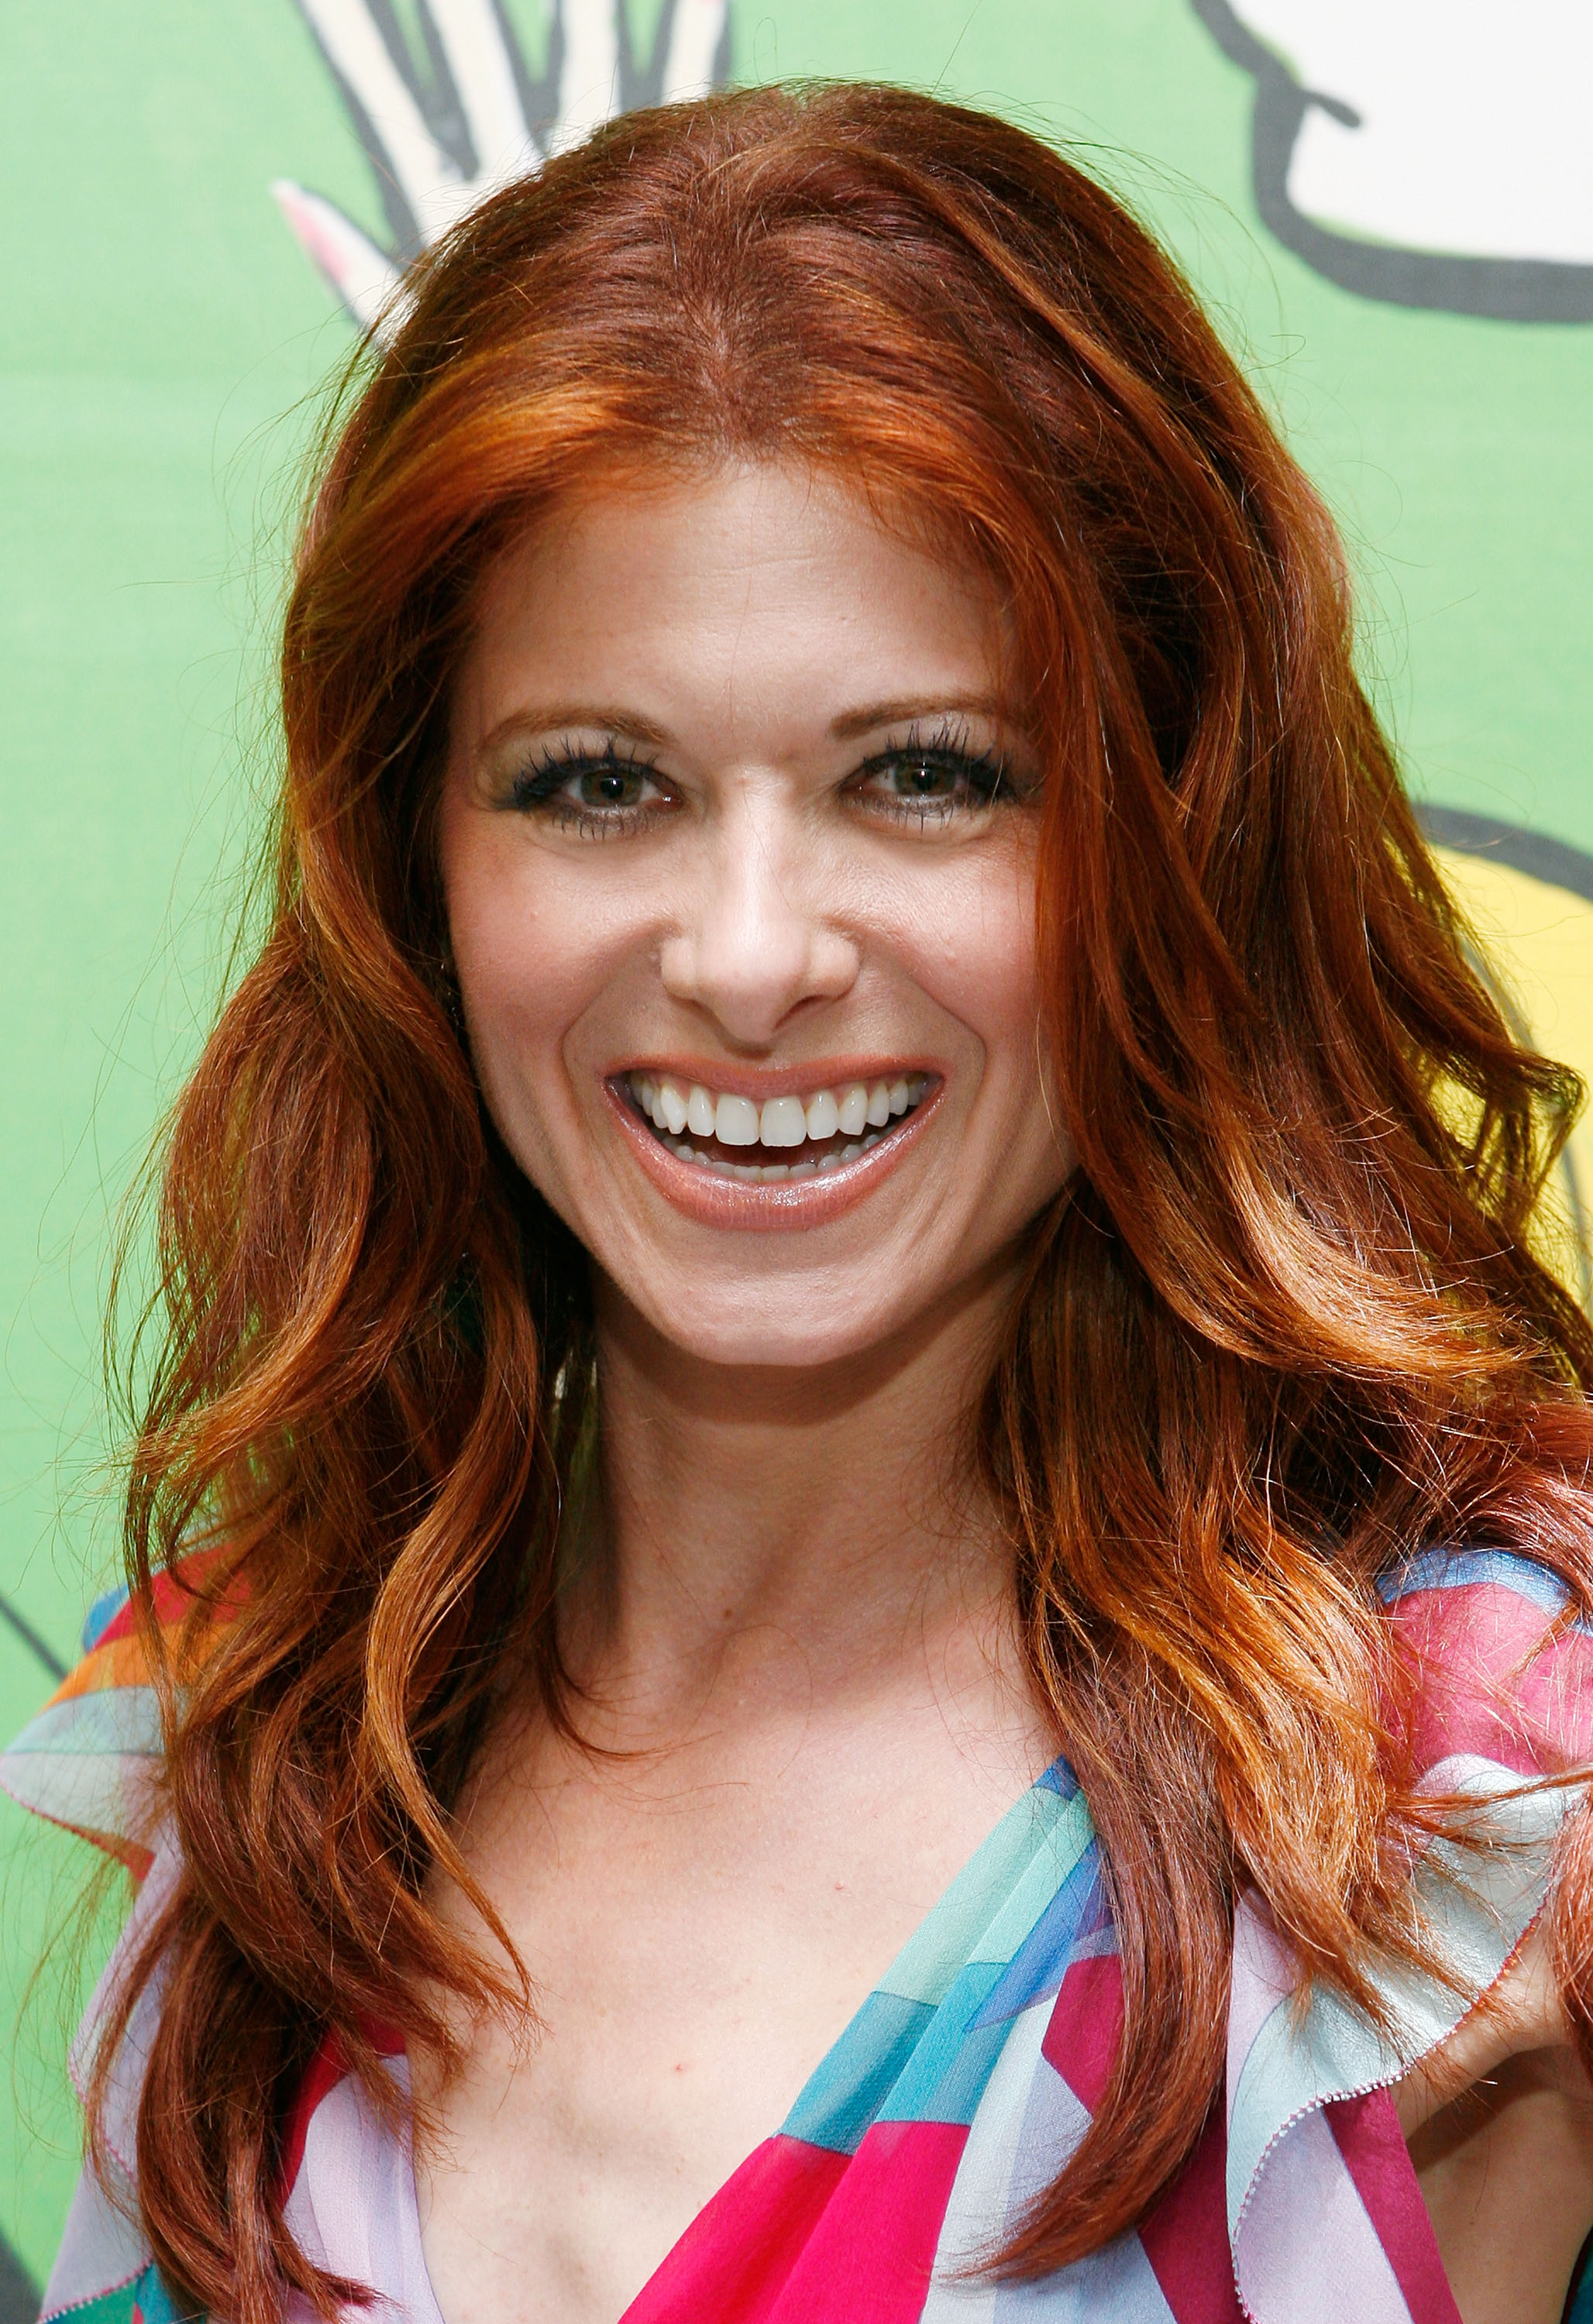 98391_Celebutopia-Debra_Messing-Launch_of_Diane_Von_Furstenberg40s_Wonder_Woman_collection-05_122_462lo.jpg